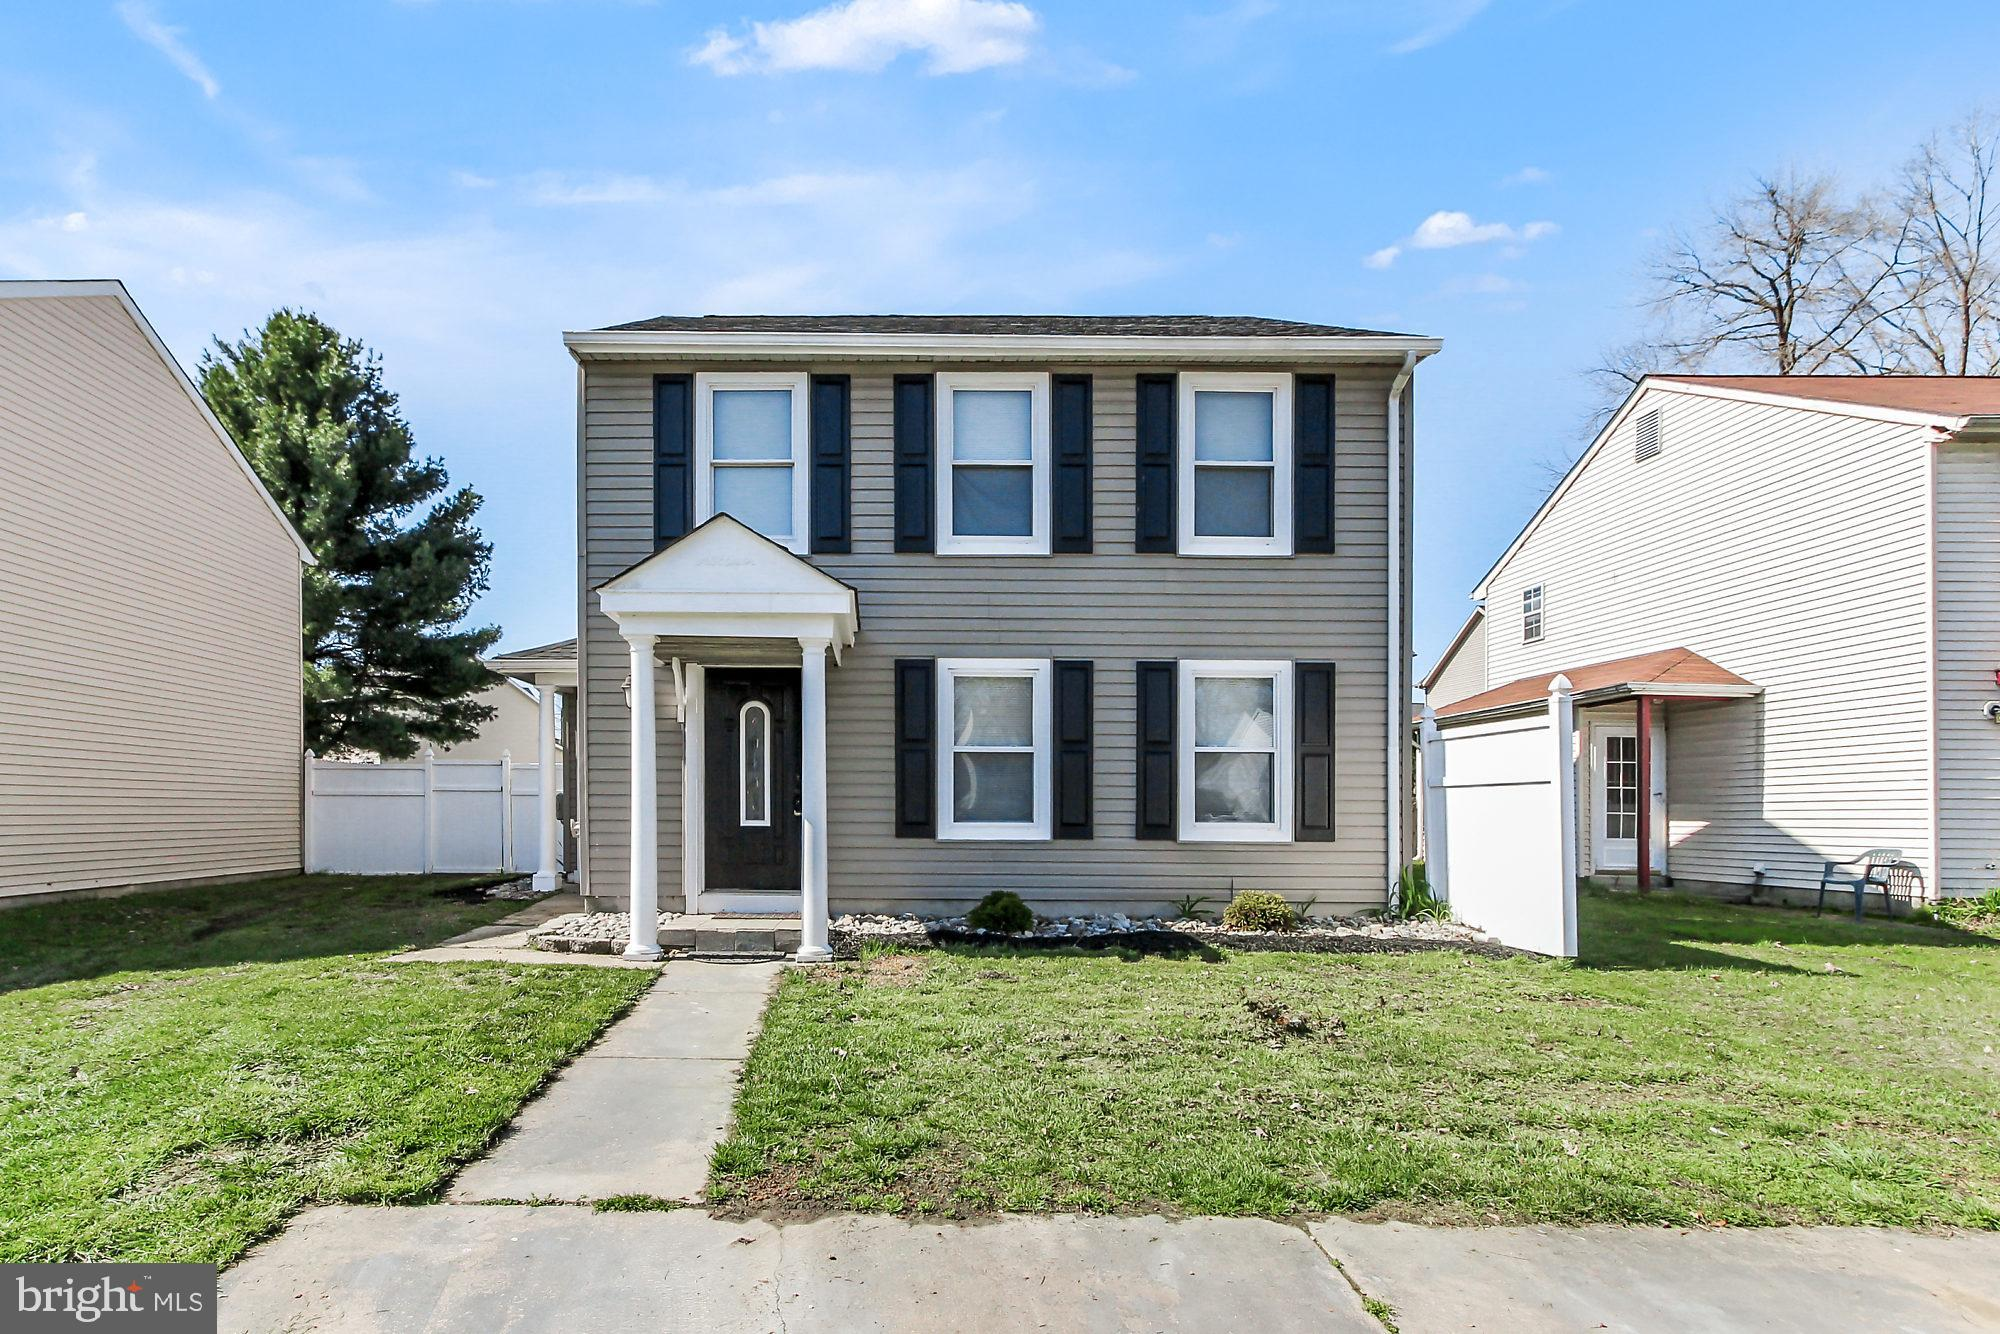 Check out this charming 3 bedroom, 1 1/2 bathroom updated home in Willoughby Woods!  This home has b